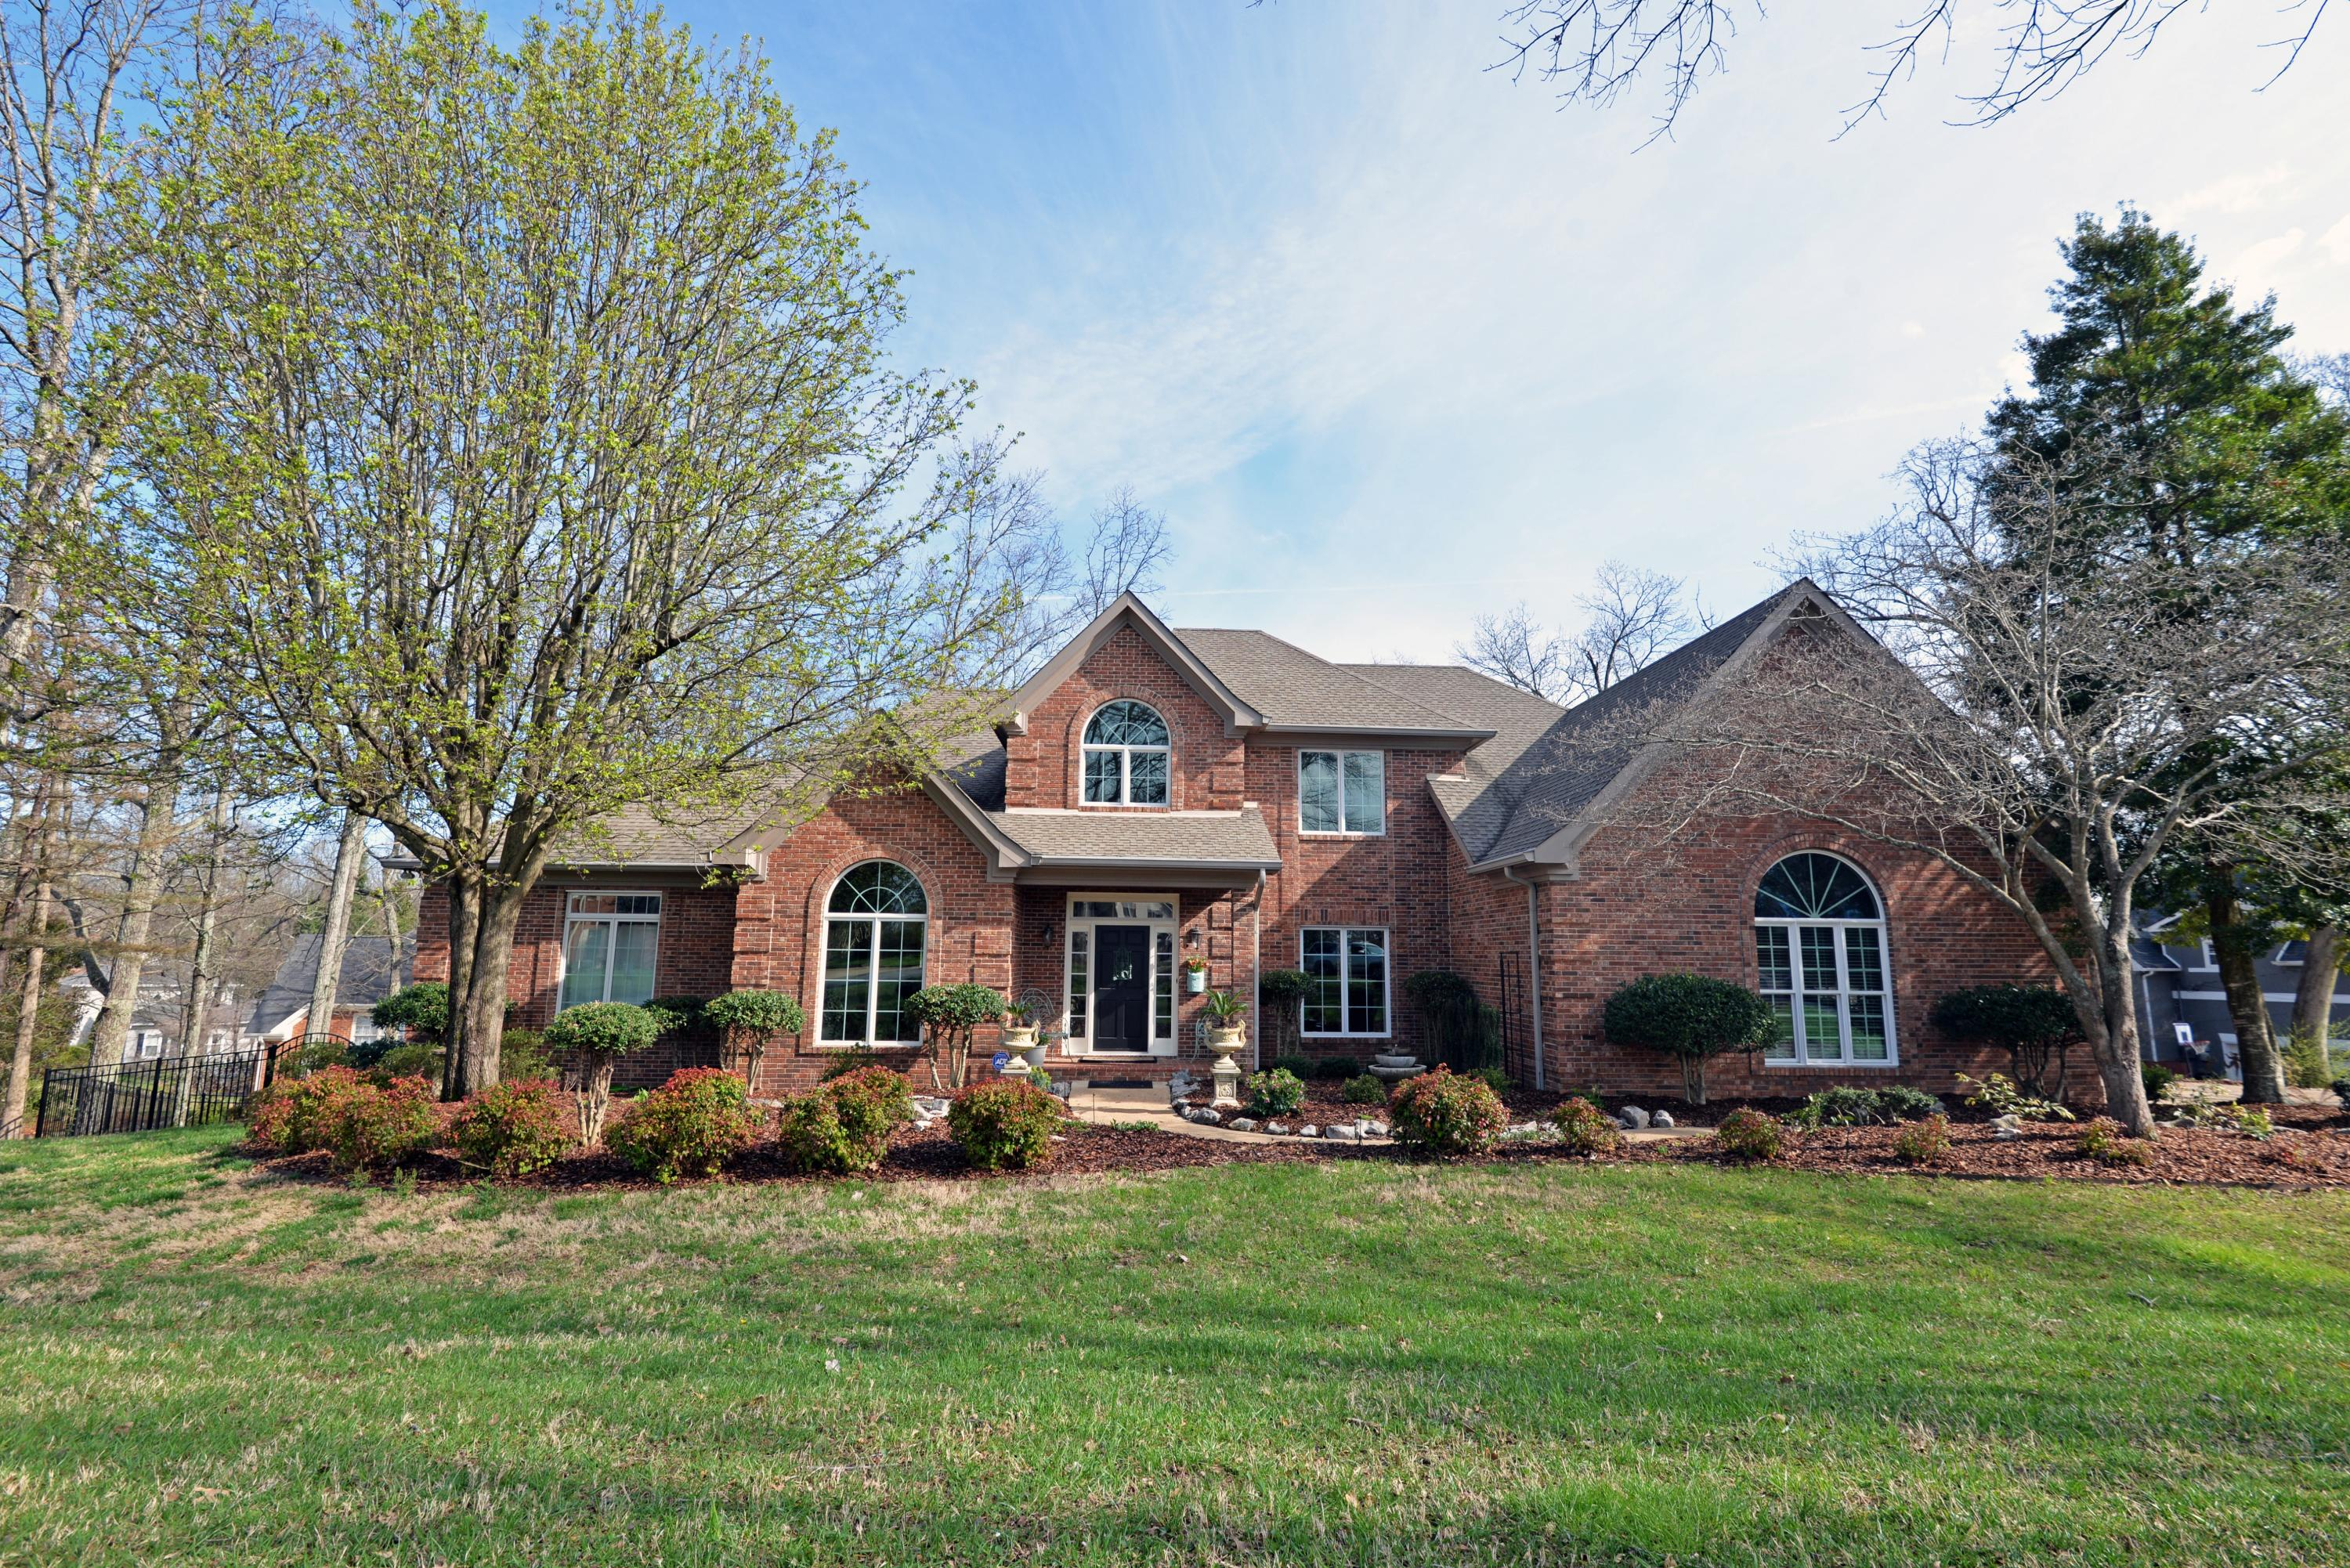 9401 Magical View Dr, Chattanooga, TN 37421